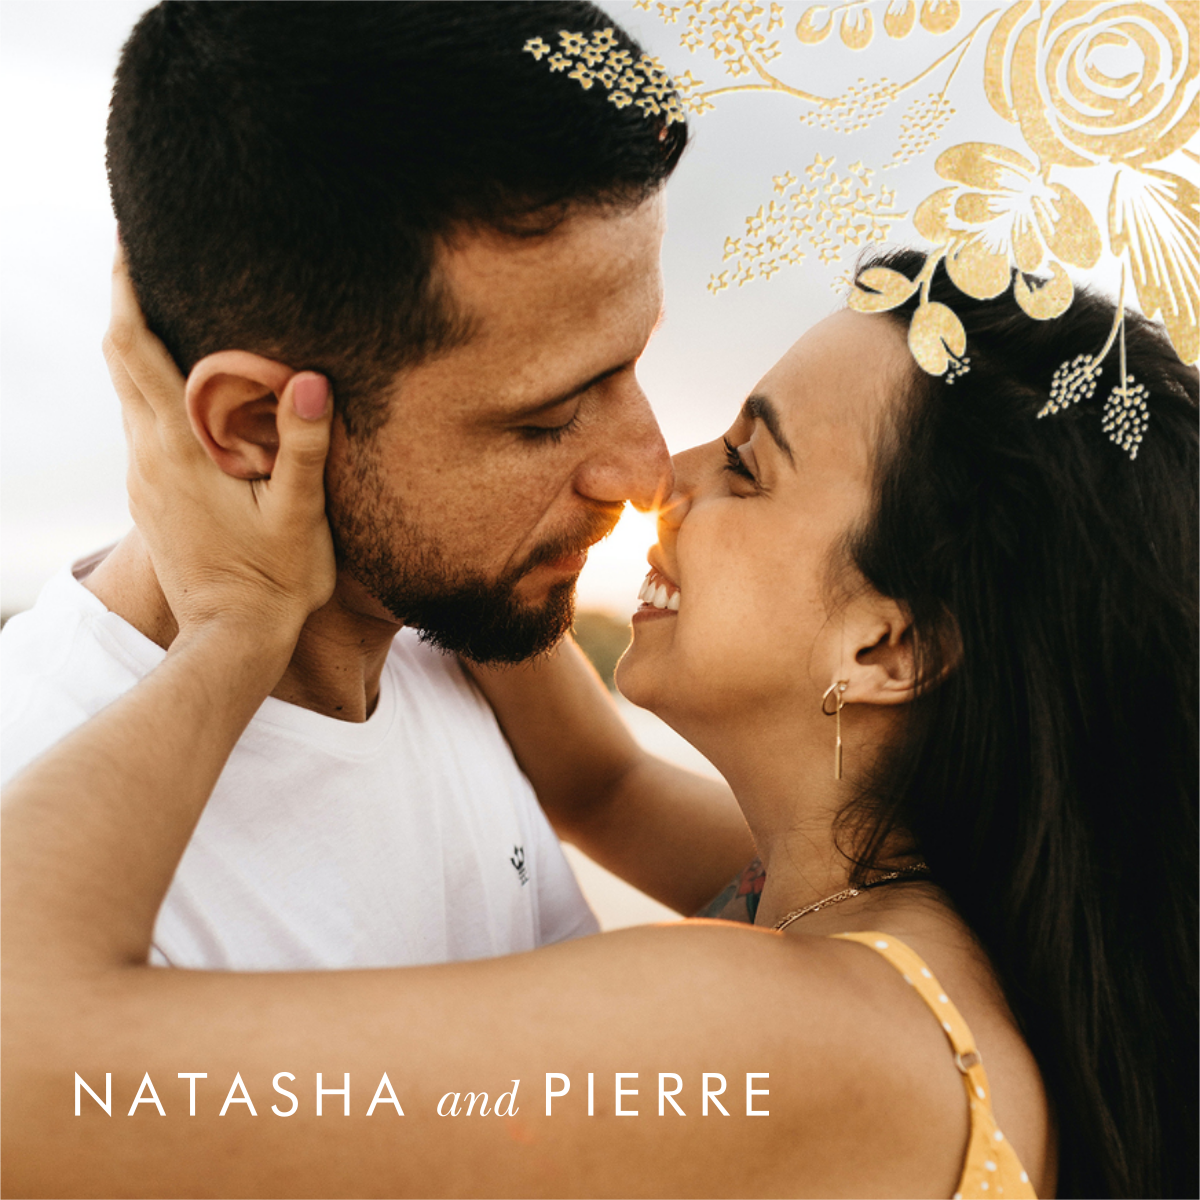 Heather and Lace (Photo Announcement) - Gold - Rifle Paper Co.